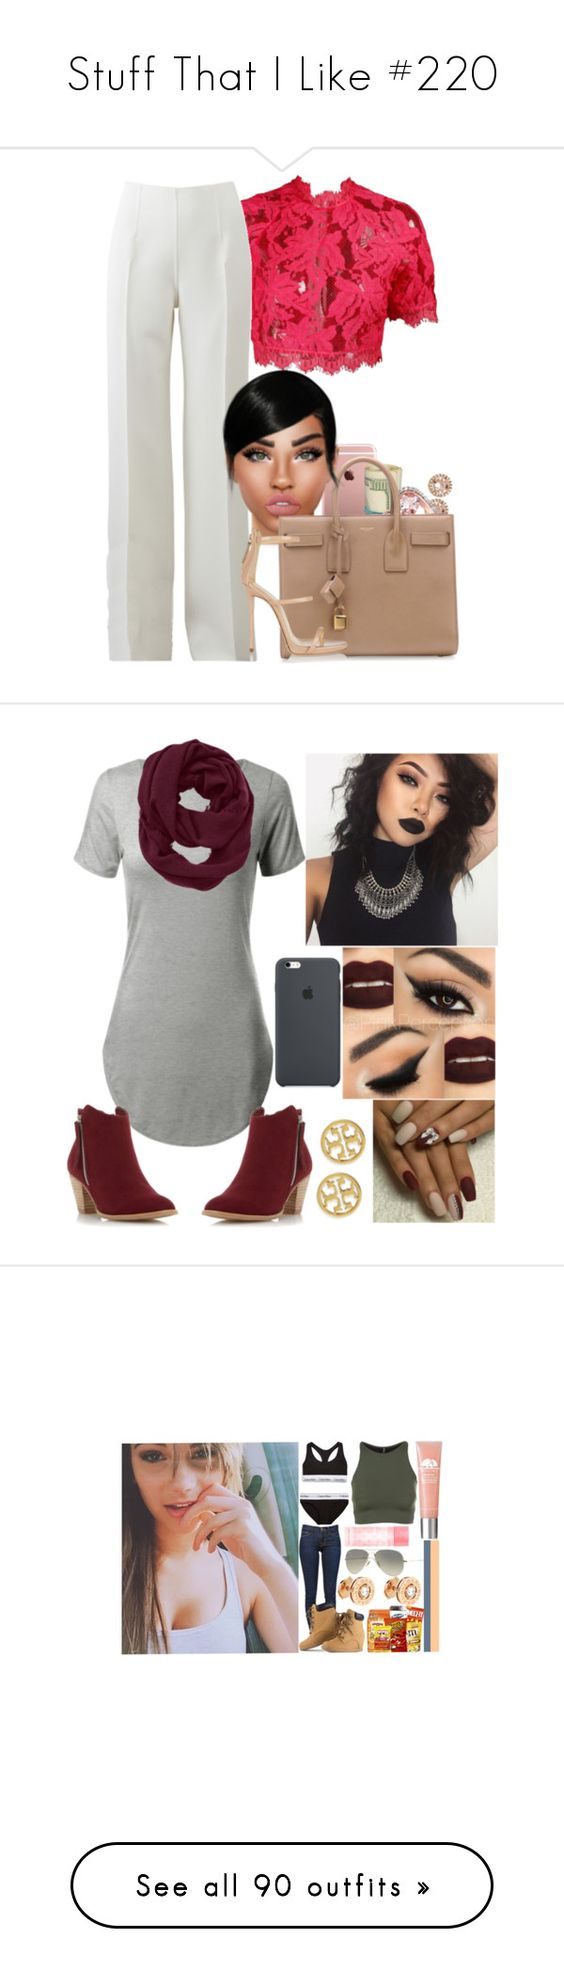 """Stuff That I Like #220"" by jasmine-humphries ❤ liked on Polyvore featuring Michael Kors, Yves Saint Laurent, Giuseppe Zanotti, Athleta, Dorothy Perkins, Tory Burch, tops, crop tops, shirts and tank tops"